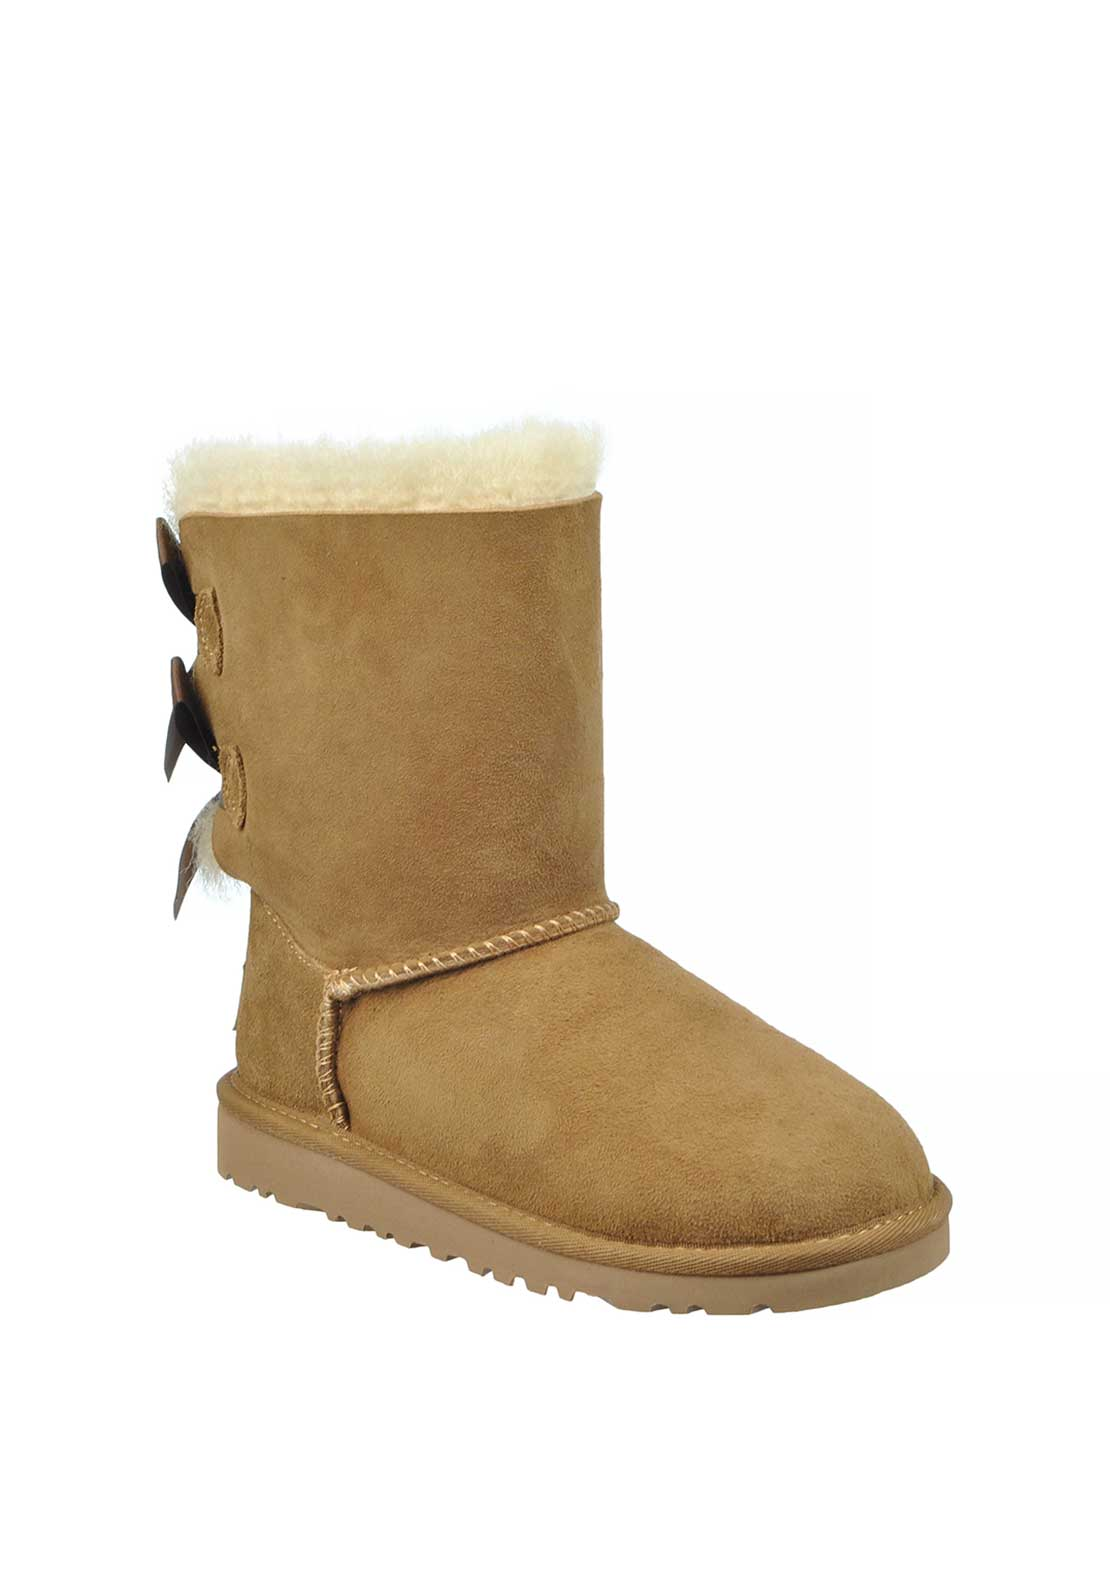 UGG Australia Youth Girls Suede Bailey Bow Boots, Chestnut